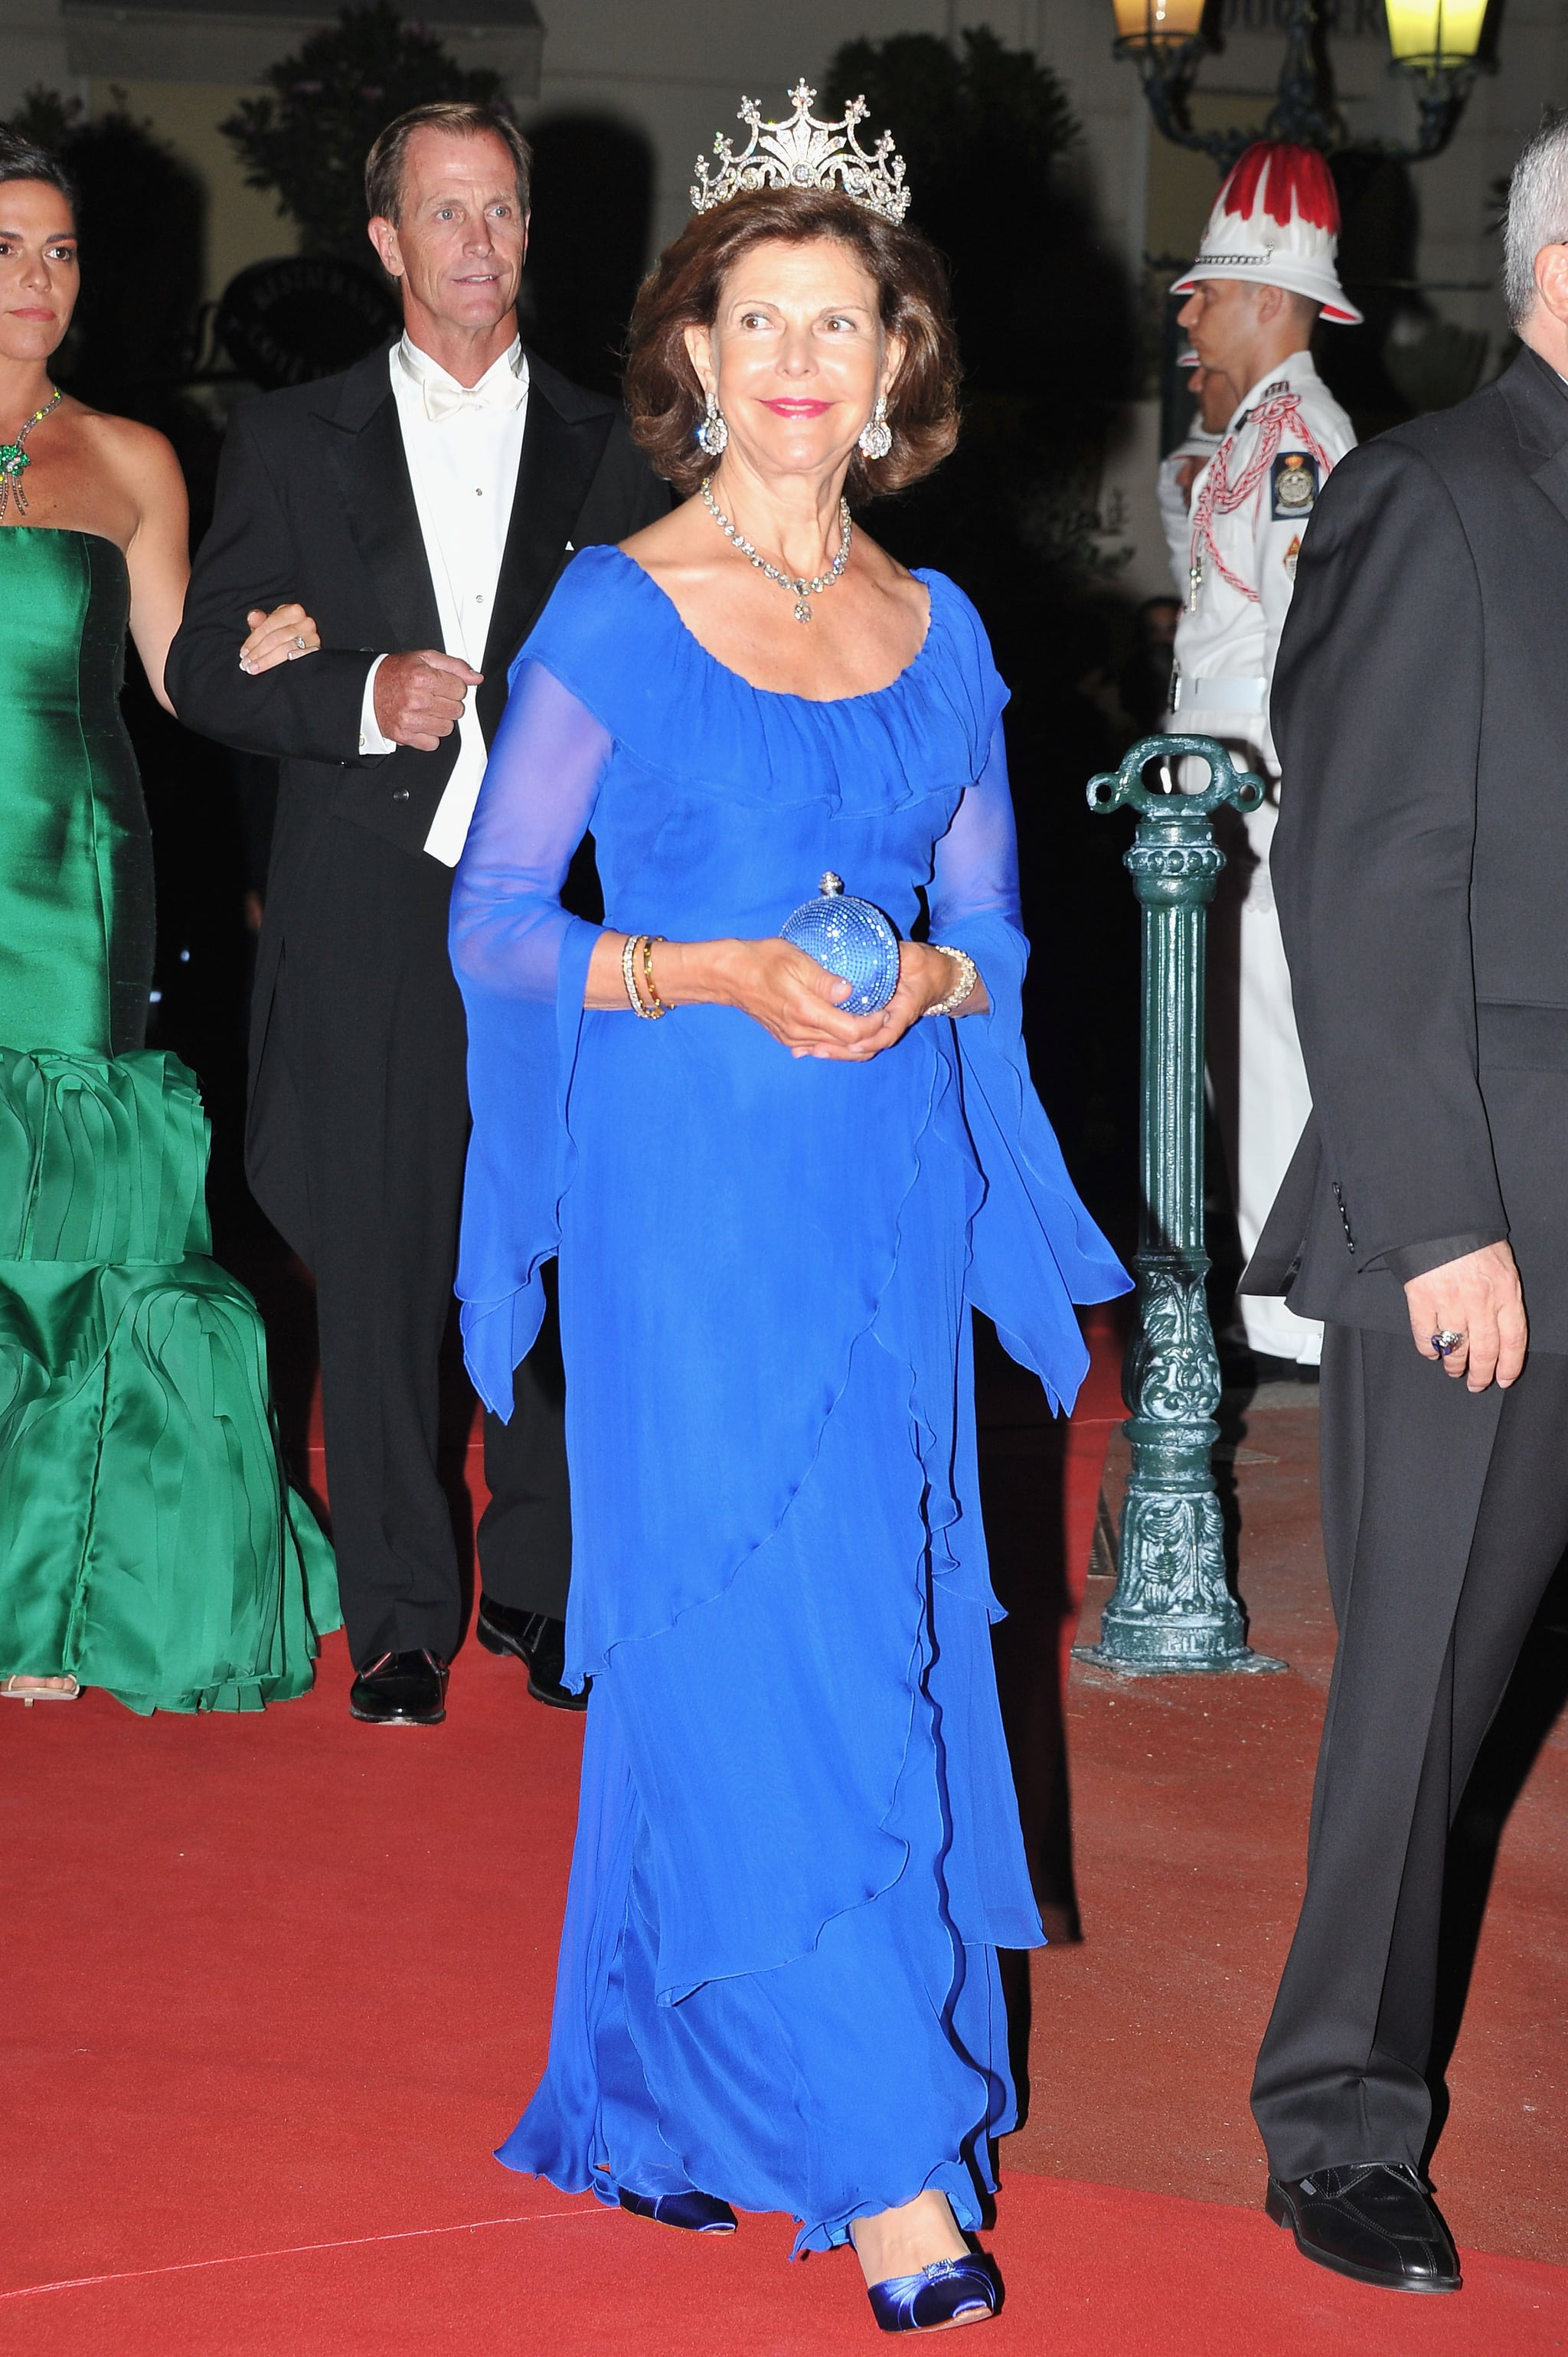 Queen Silvia of Sweden attended a dinner at Opera terraces after the religious wedding ceremony of Prince Albert II of Monaco and Princess Charlene of Monaco.